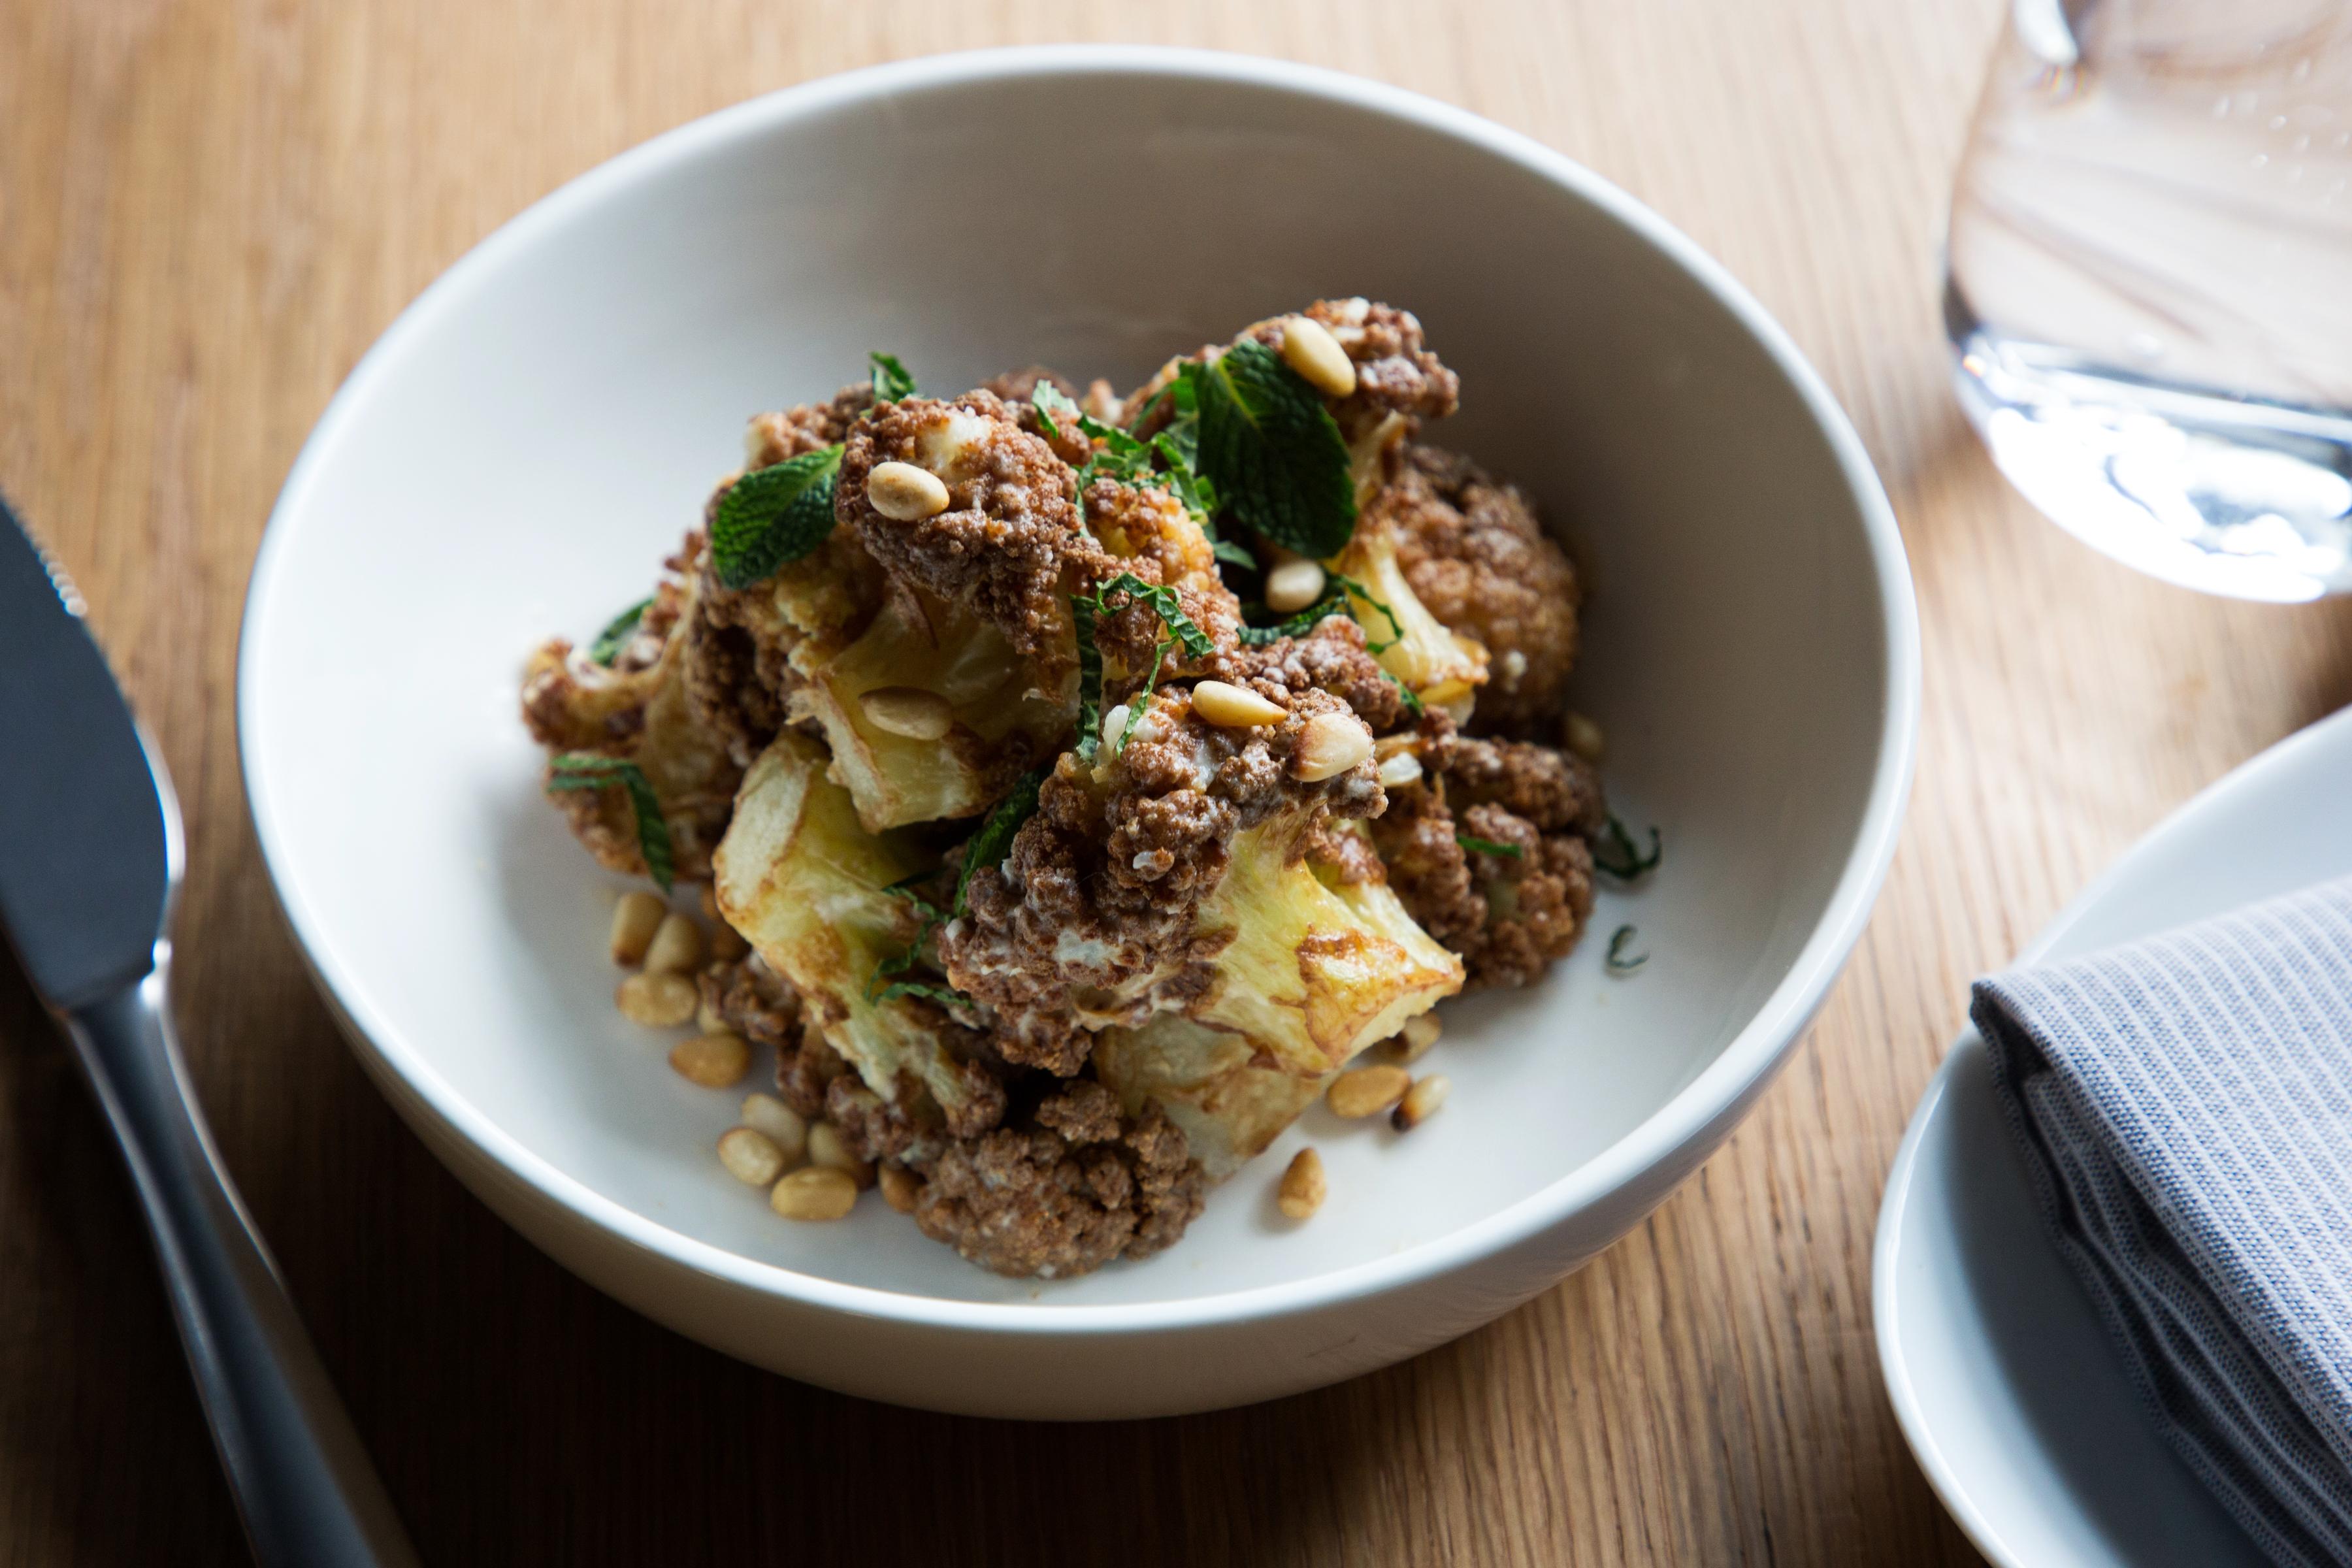 Caramelized cauliflower from Chloe is now available for takeout